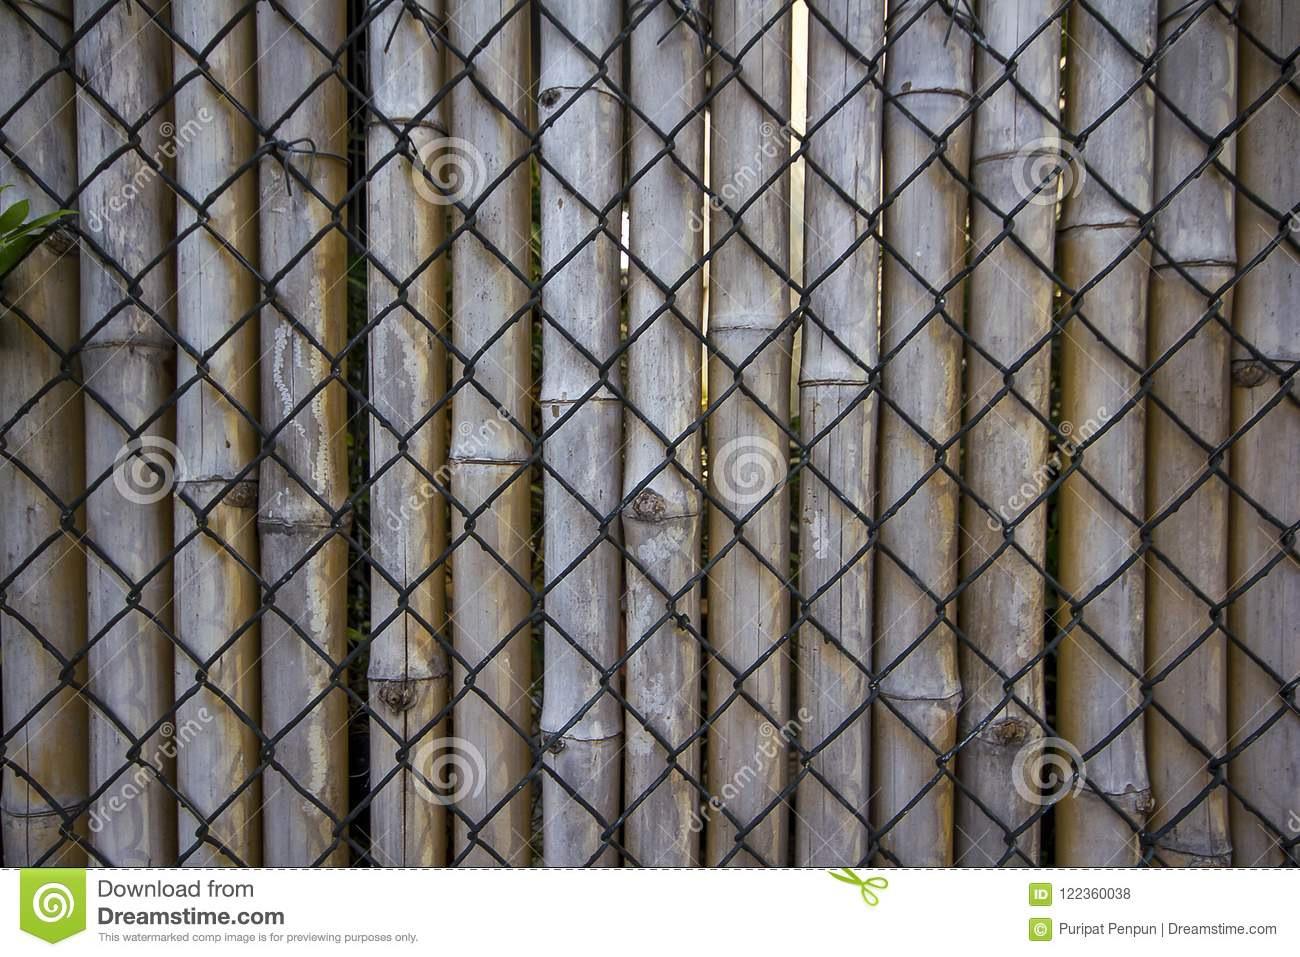 Wire Mesh, Bamboo Used To Make Fences. Stock Photo - Image of border ...